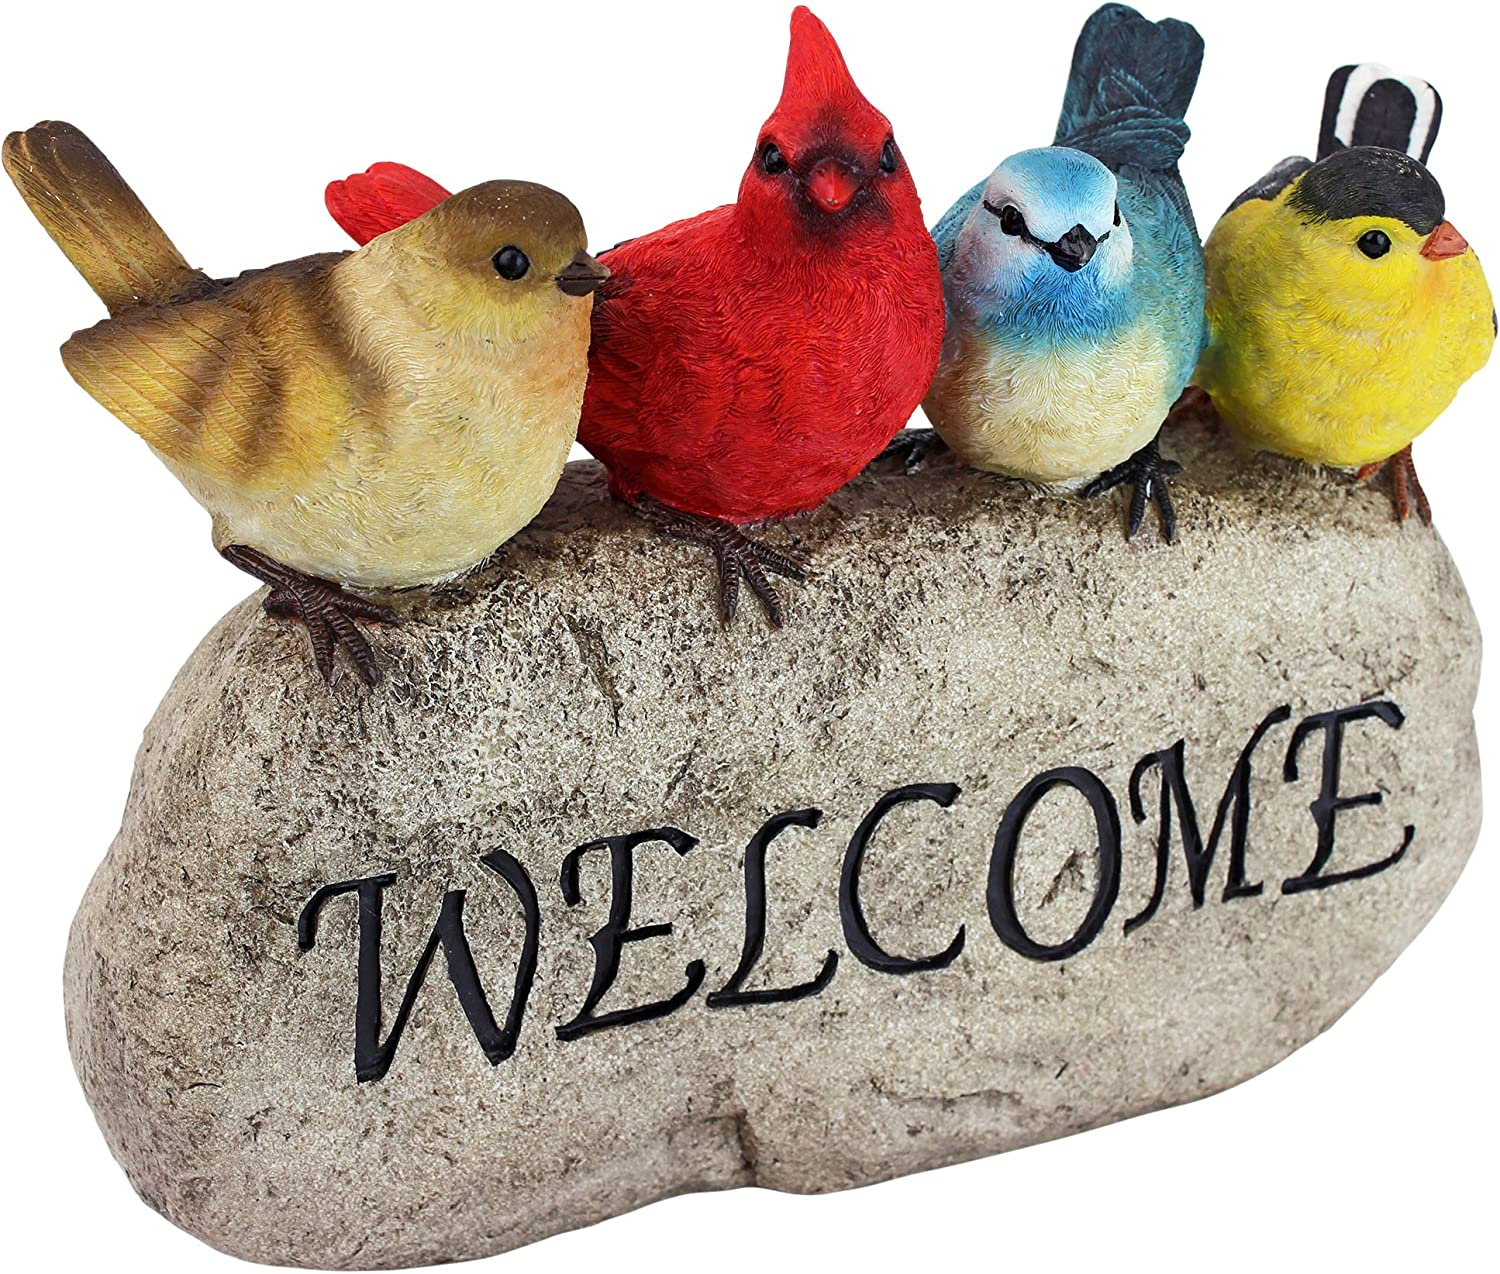 Design Toscano QM21001 Birdy Welcome Garden Stone Statue, Large, Full Color